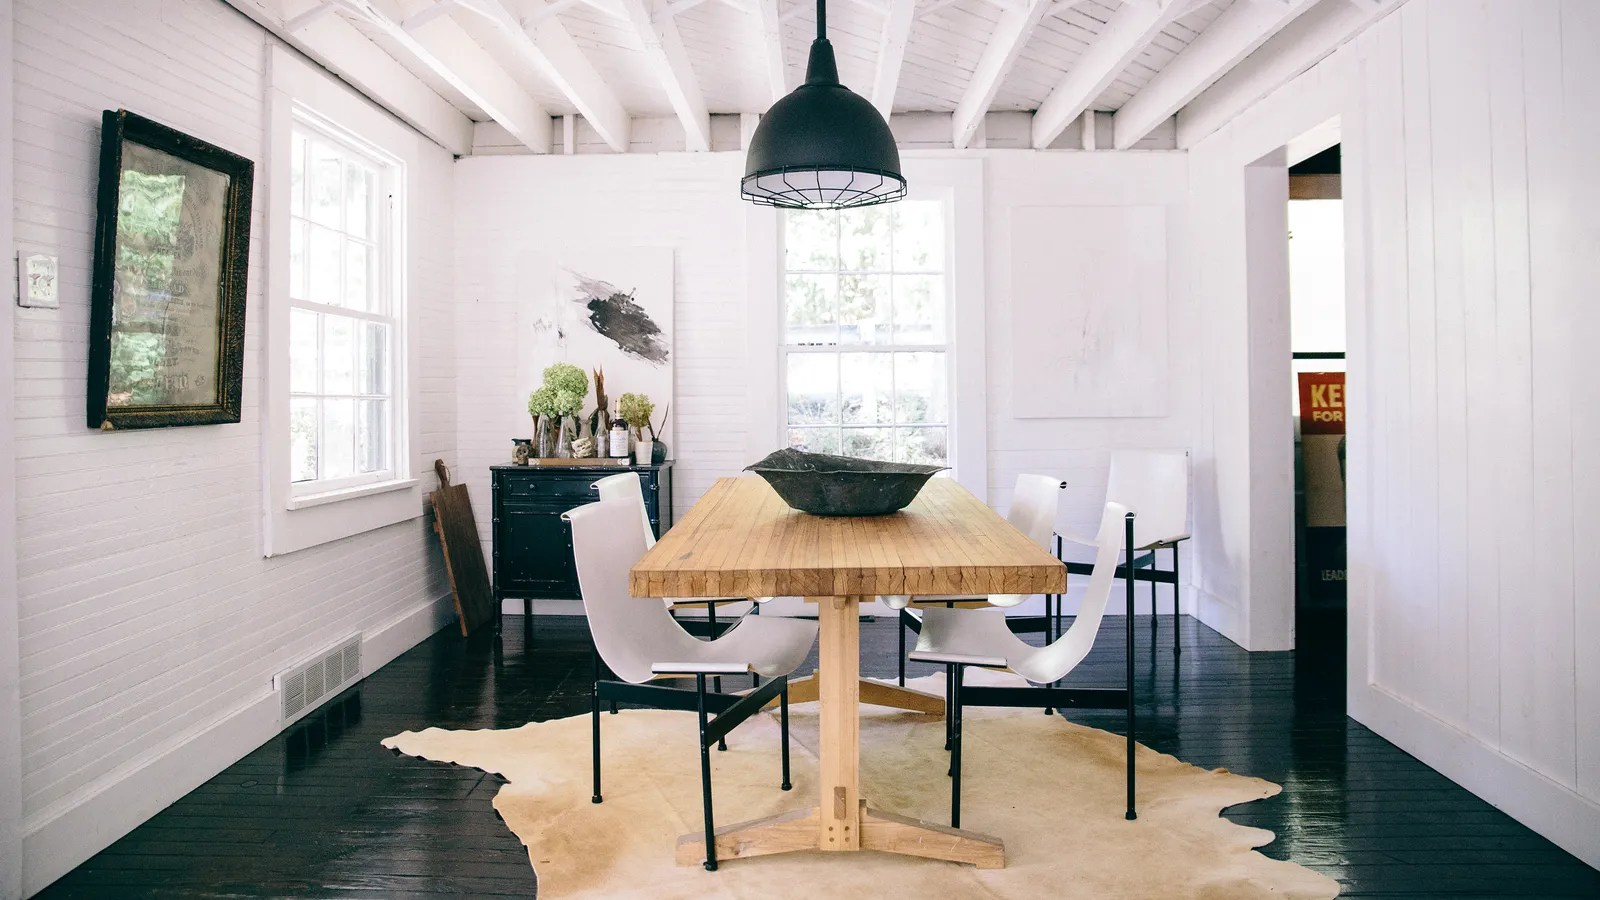 Leanne Fords Quirky Natural Cool Interior Design